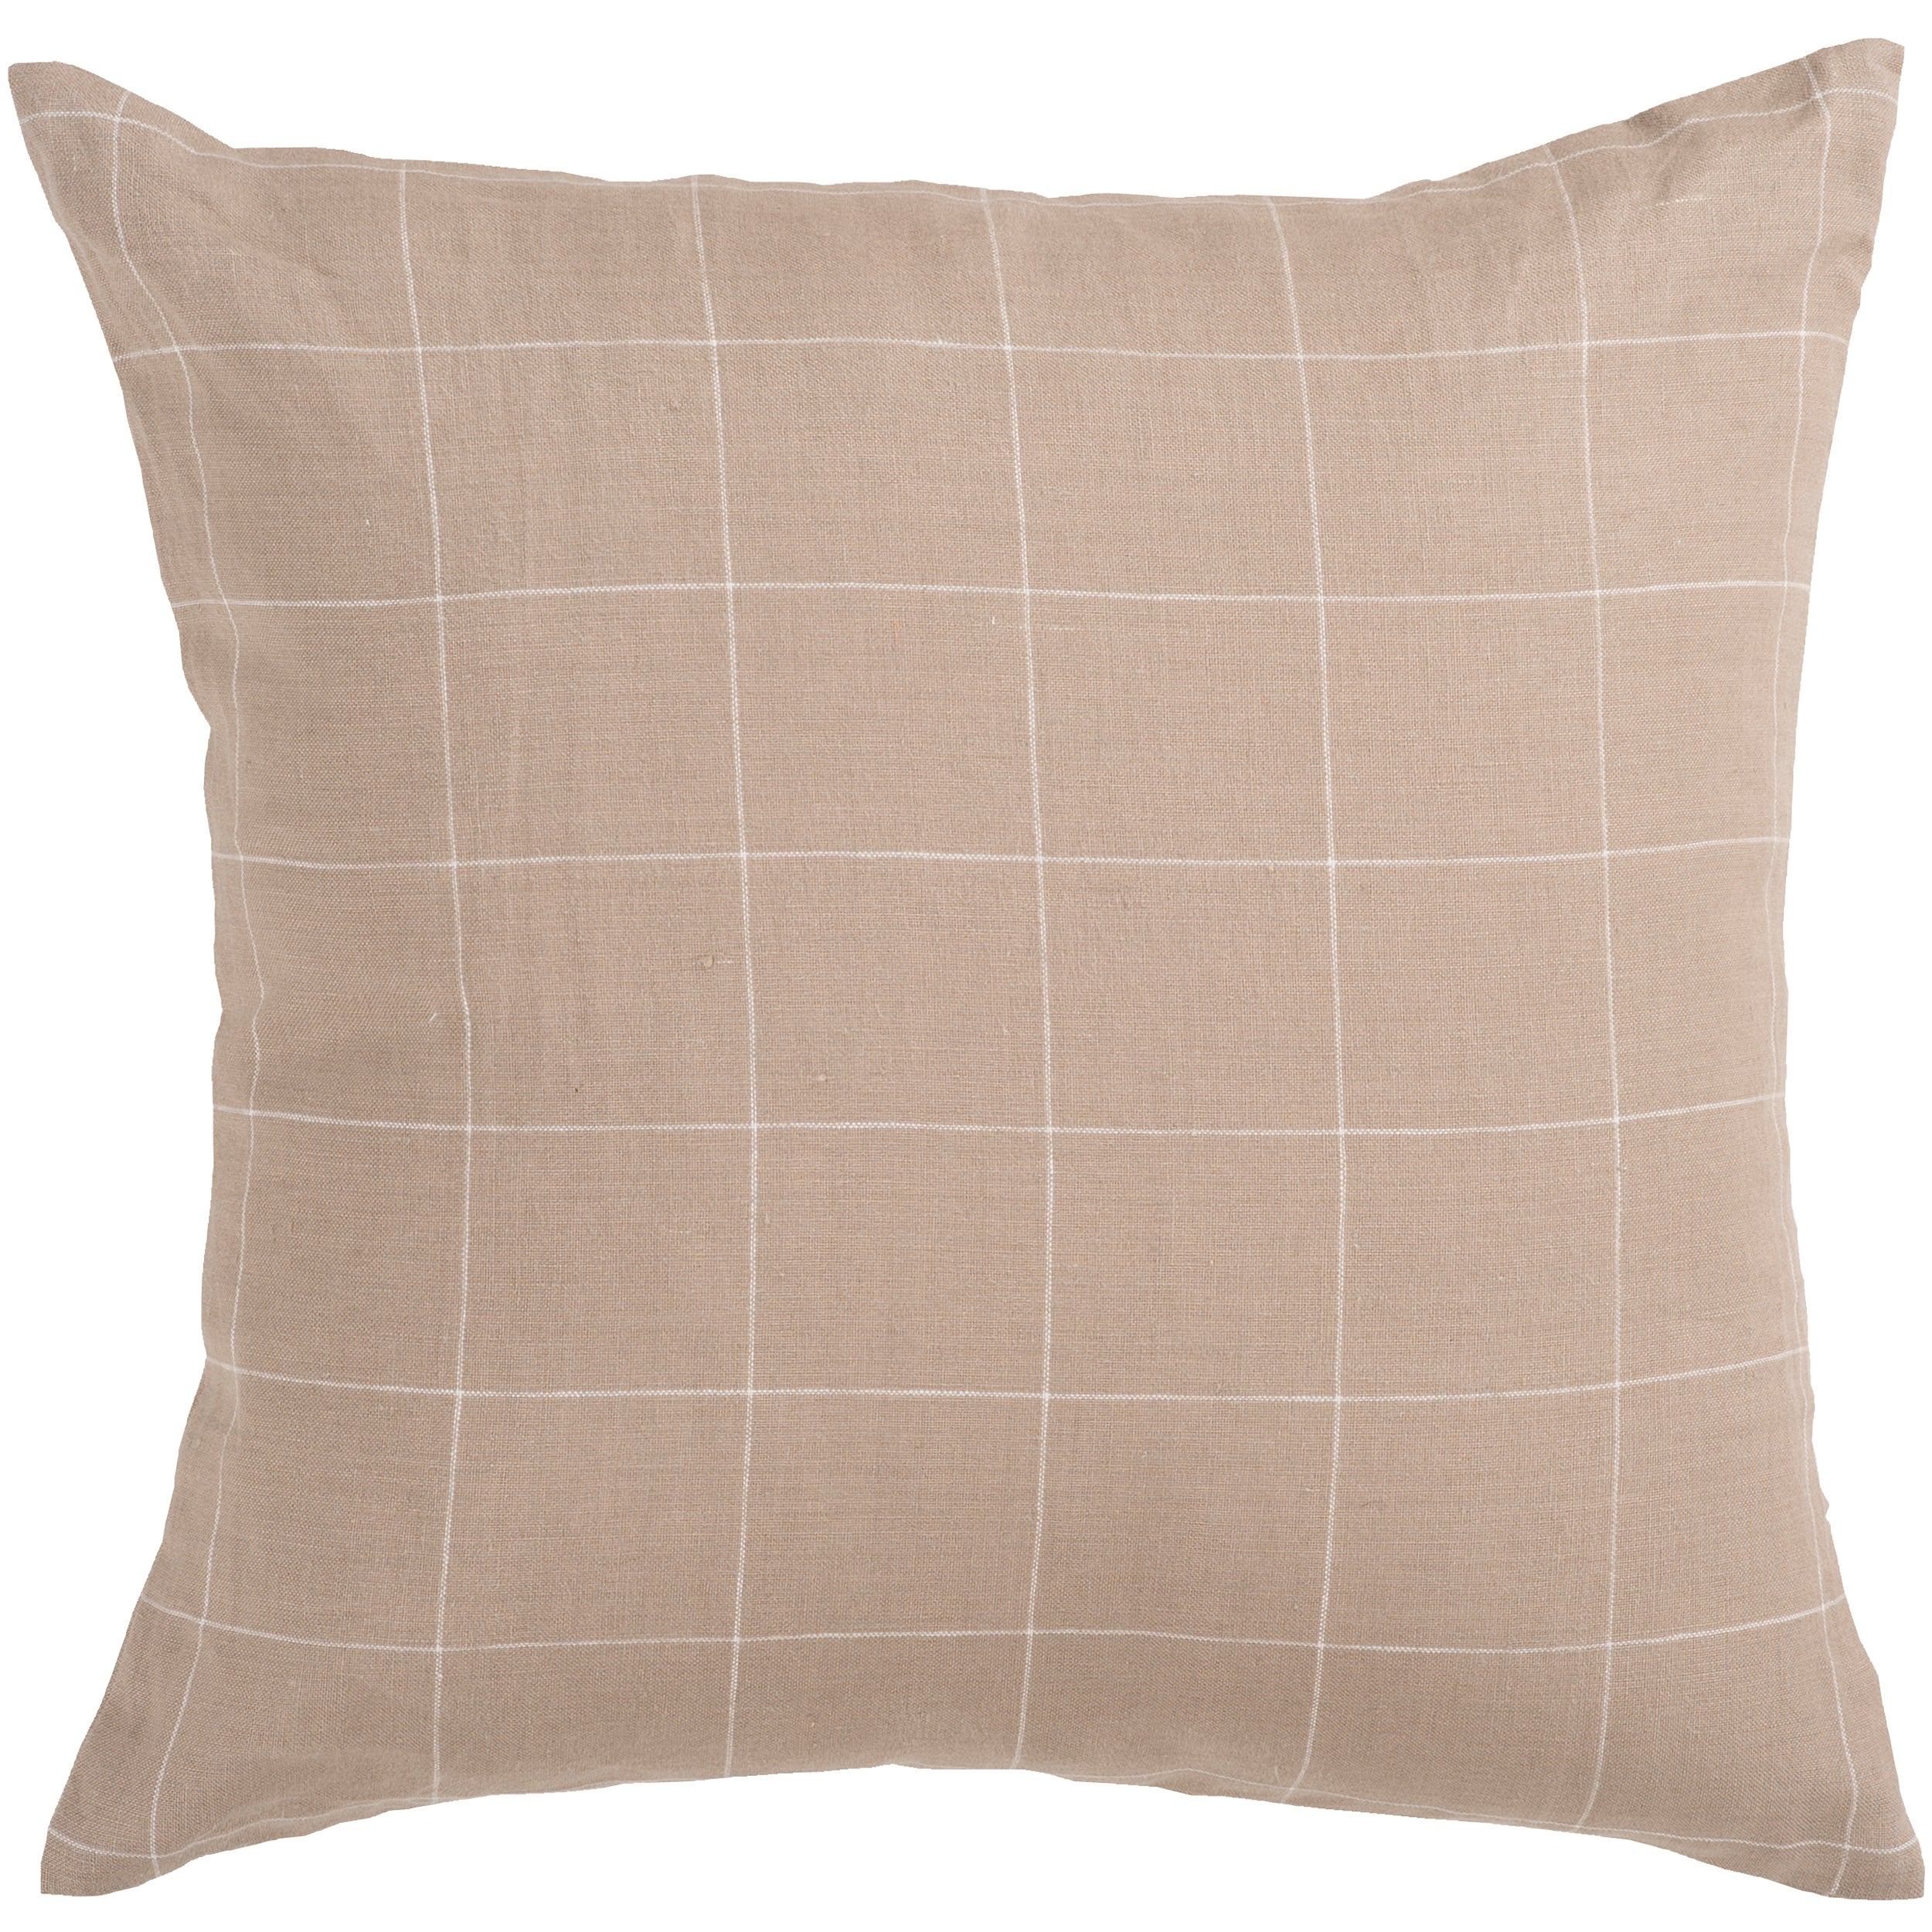 Decorative Pales 18-inch Pillow